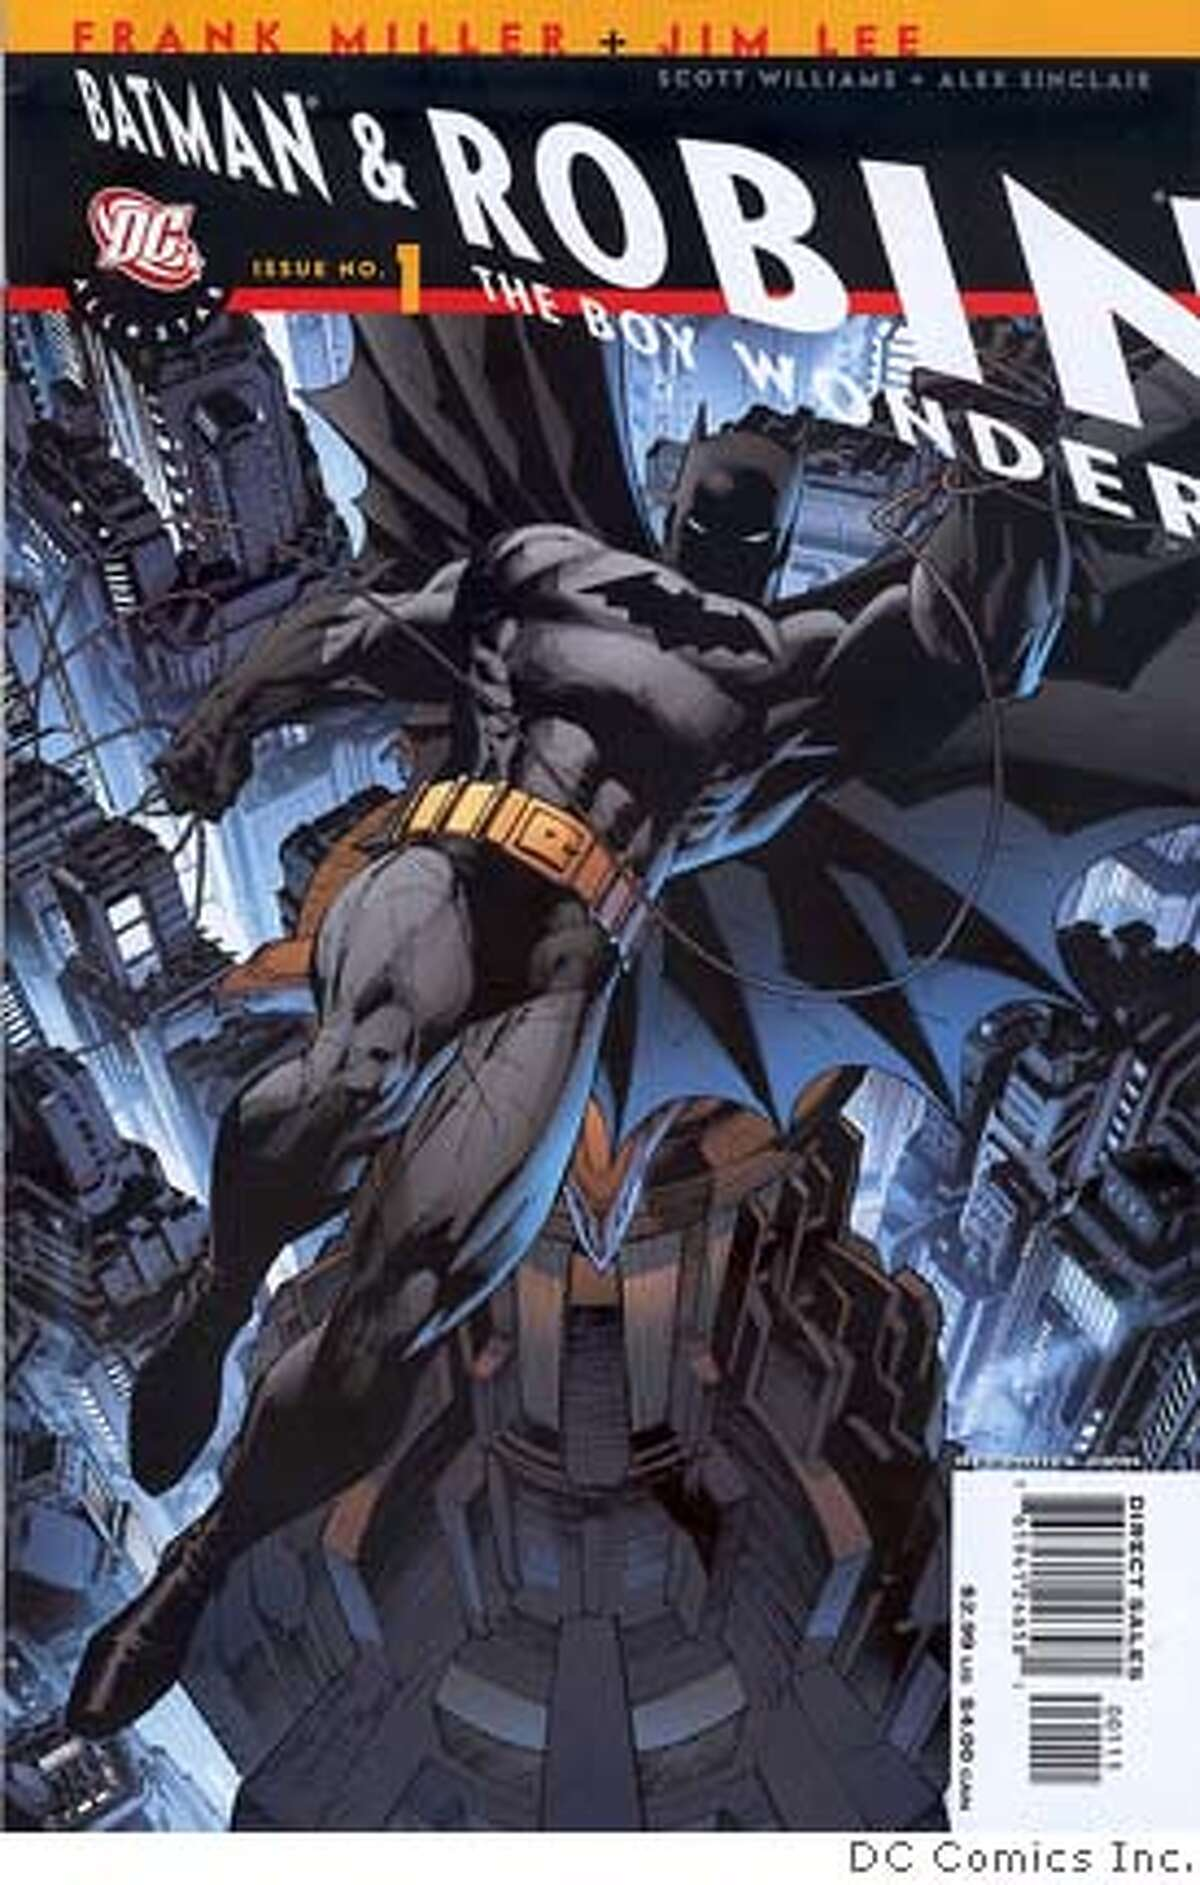 """SH06A213COMICS Jan. 24, 2006 _ """"All Star Batman and Robin the Boy Wonder"""" No. 1, by Frank Miller (""""Sin City"""") and Jim Lee, was the top-selling book for Diamond Comics Distributors Inc. in 2005. (SHNS photo courtesy DC Comics Inc.)"""